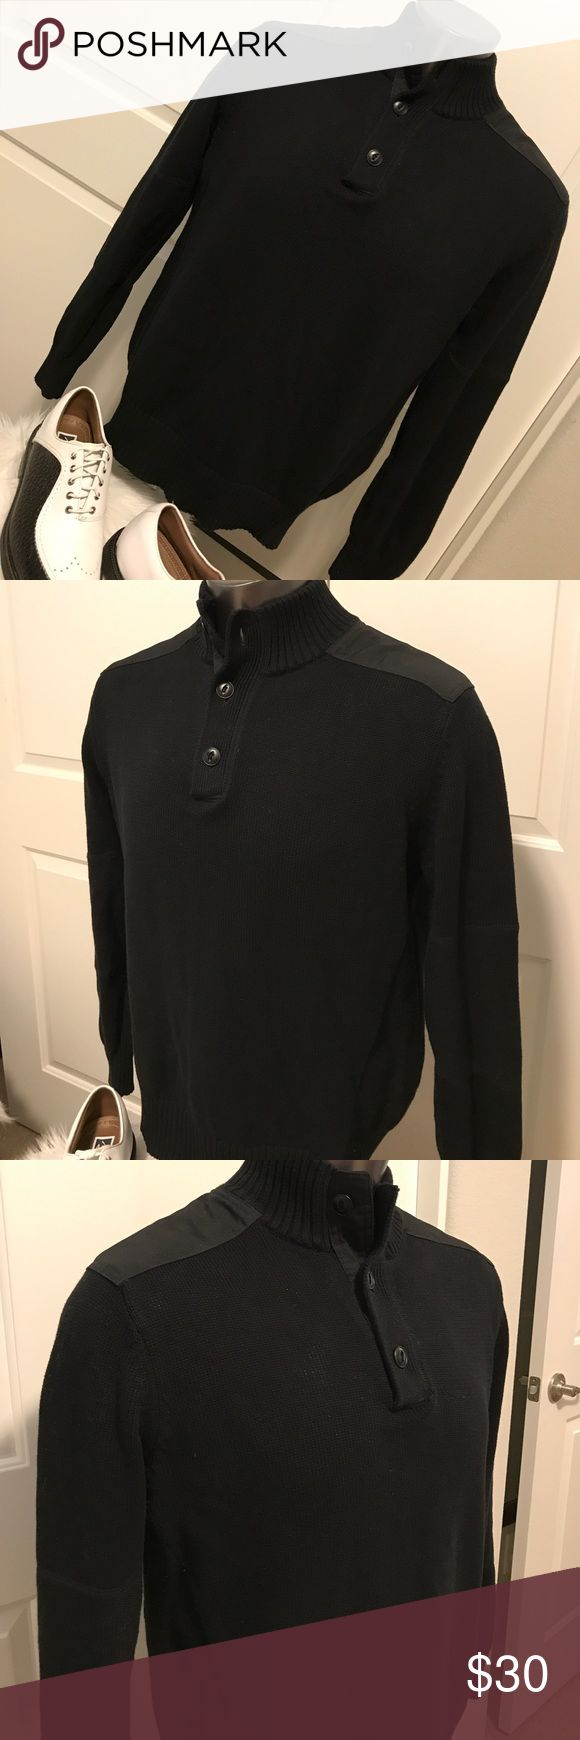 CONVERSE Men's Black Knit Mock Turtle Neck Sweater Beautiful black mock turtleneck pullover sweater. Features a three button top opening and two canvas fabric shoulder tabs. Panel stitched long sleeves. Great with jeans for the night out. Converse Sweaters